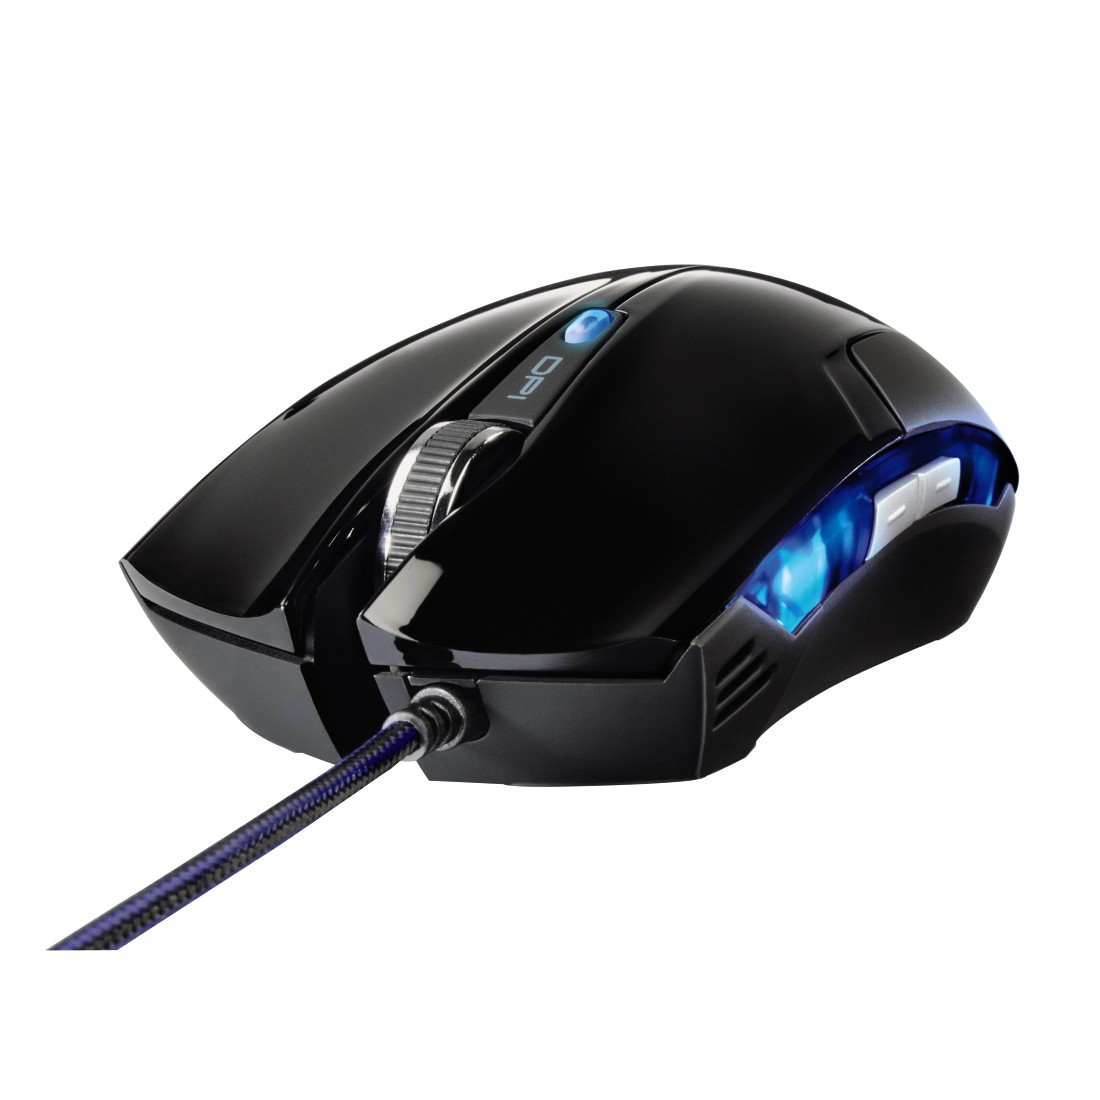 awx2 High-Res Appliance 2 - Hama, uRage Gaming Mouse